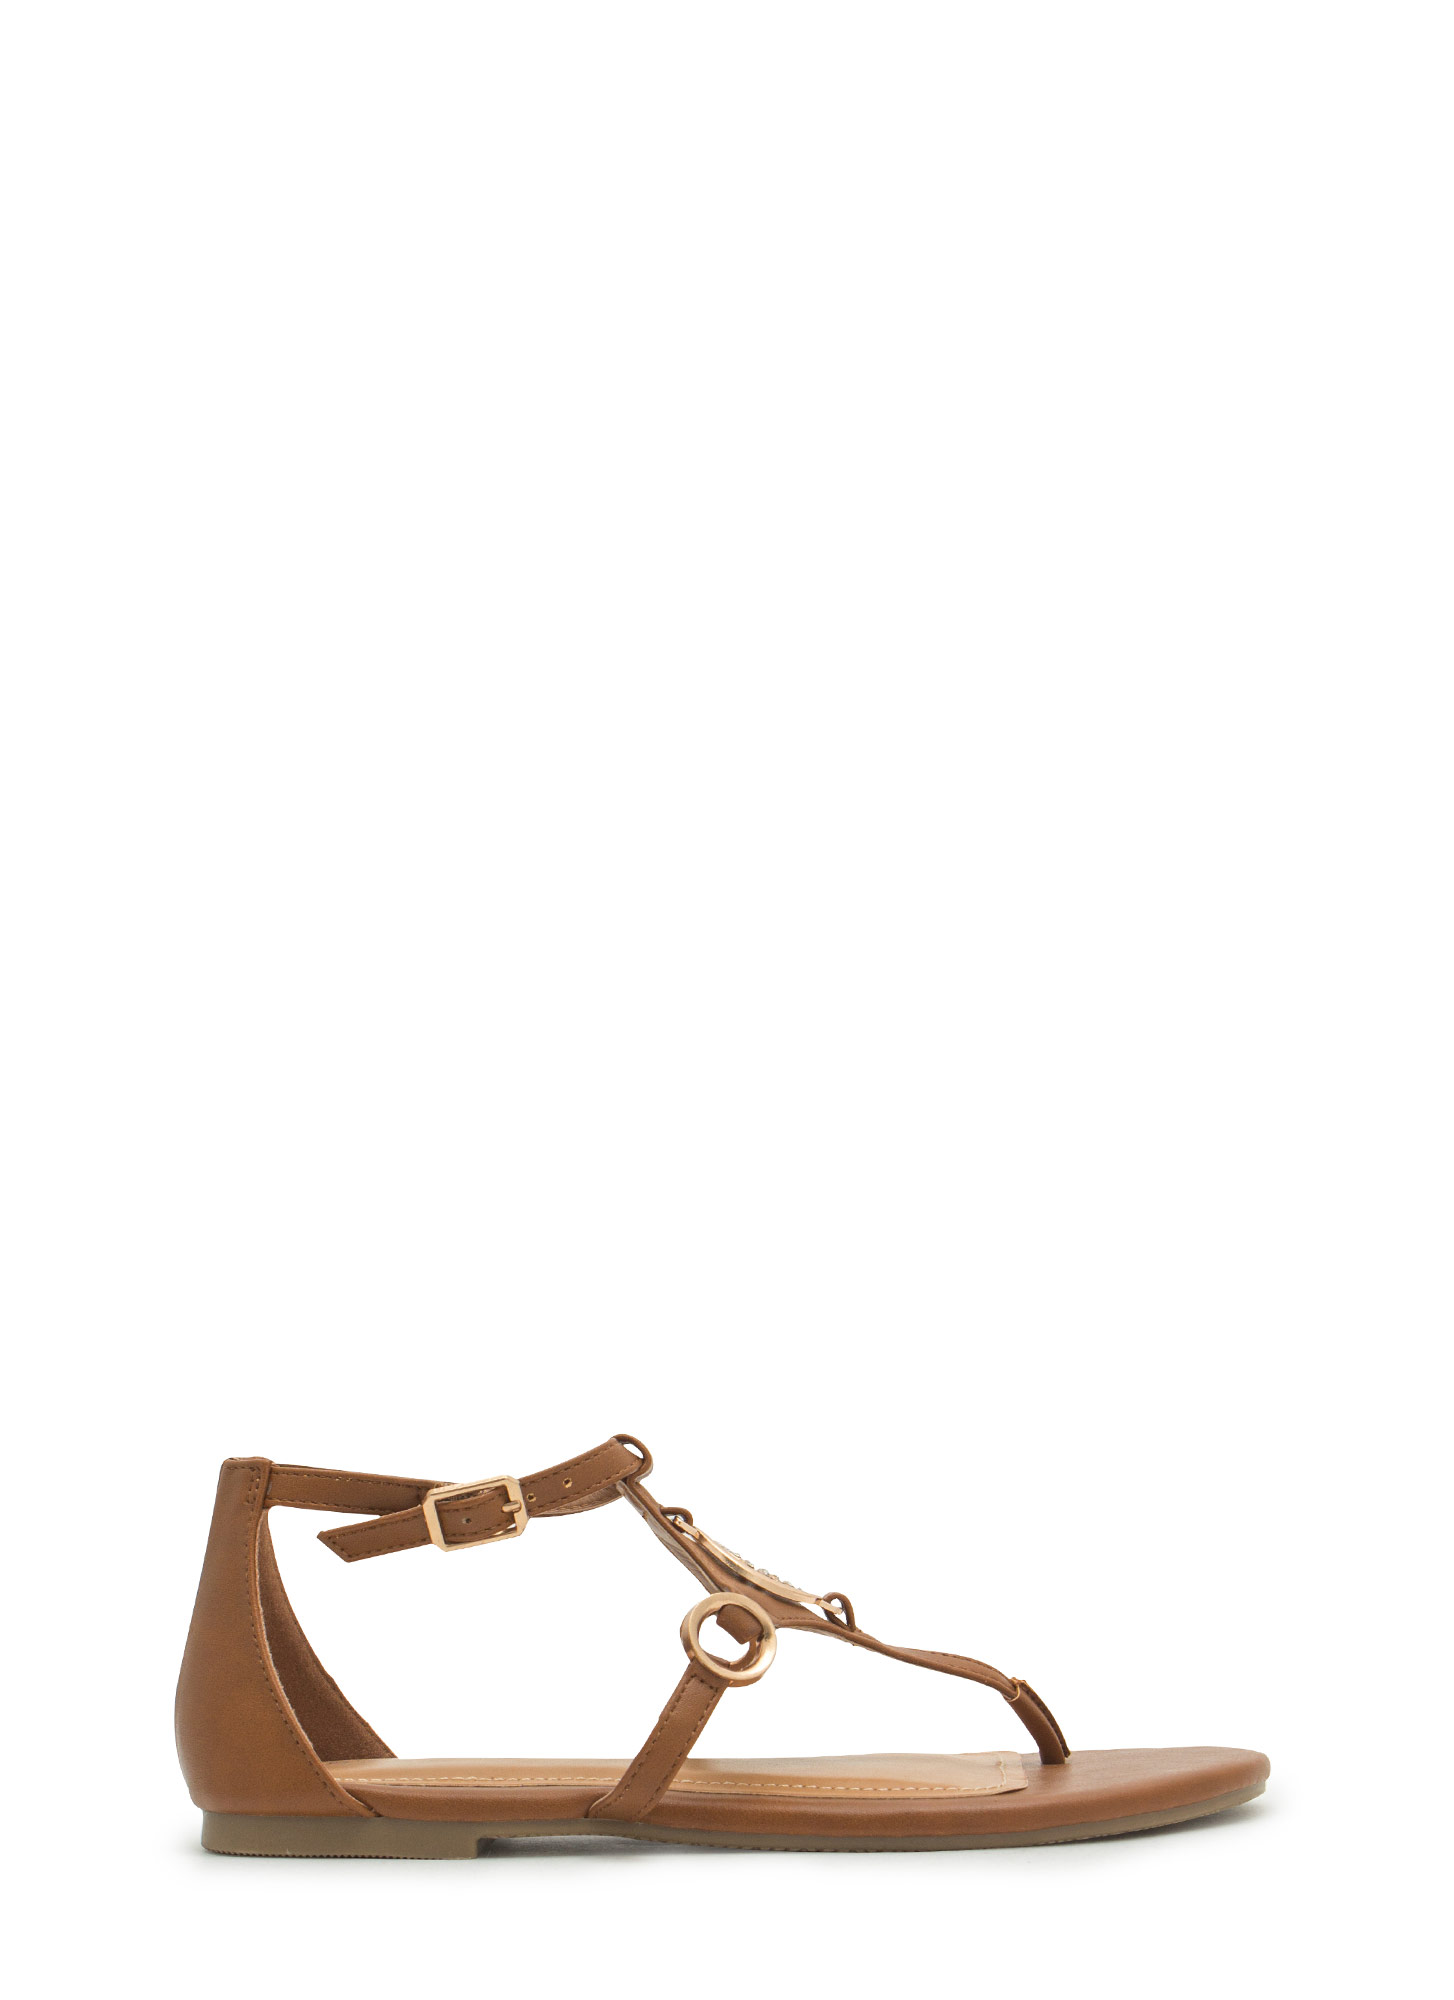 Medal Contender Strappy Ring Sandals TAN